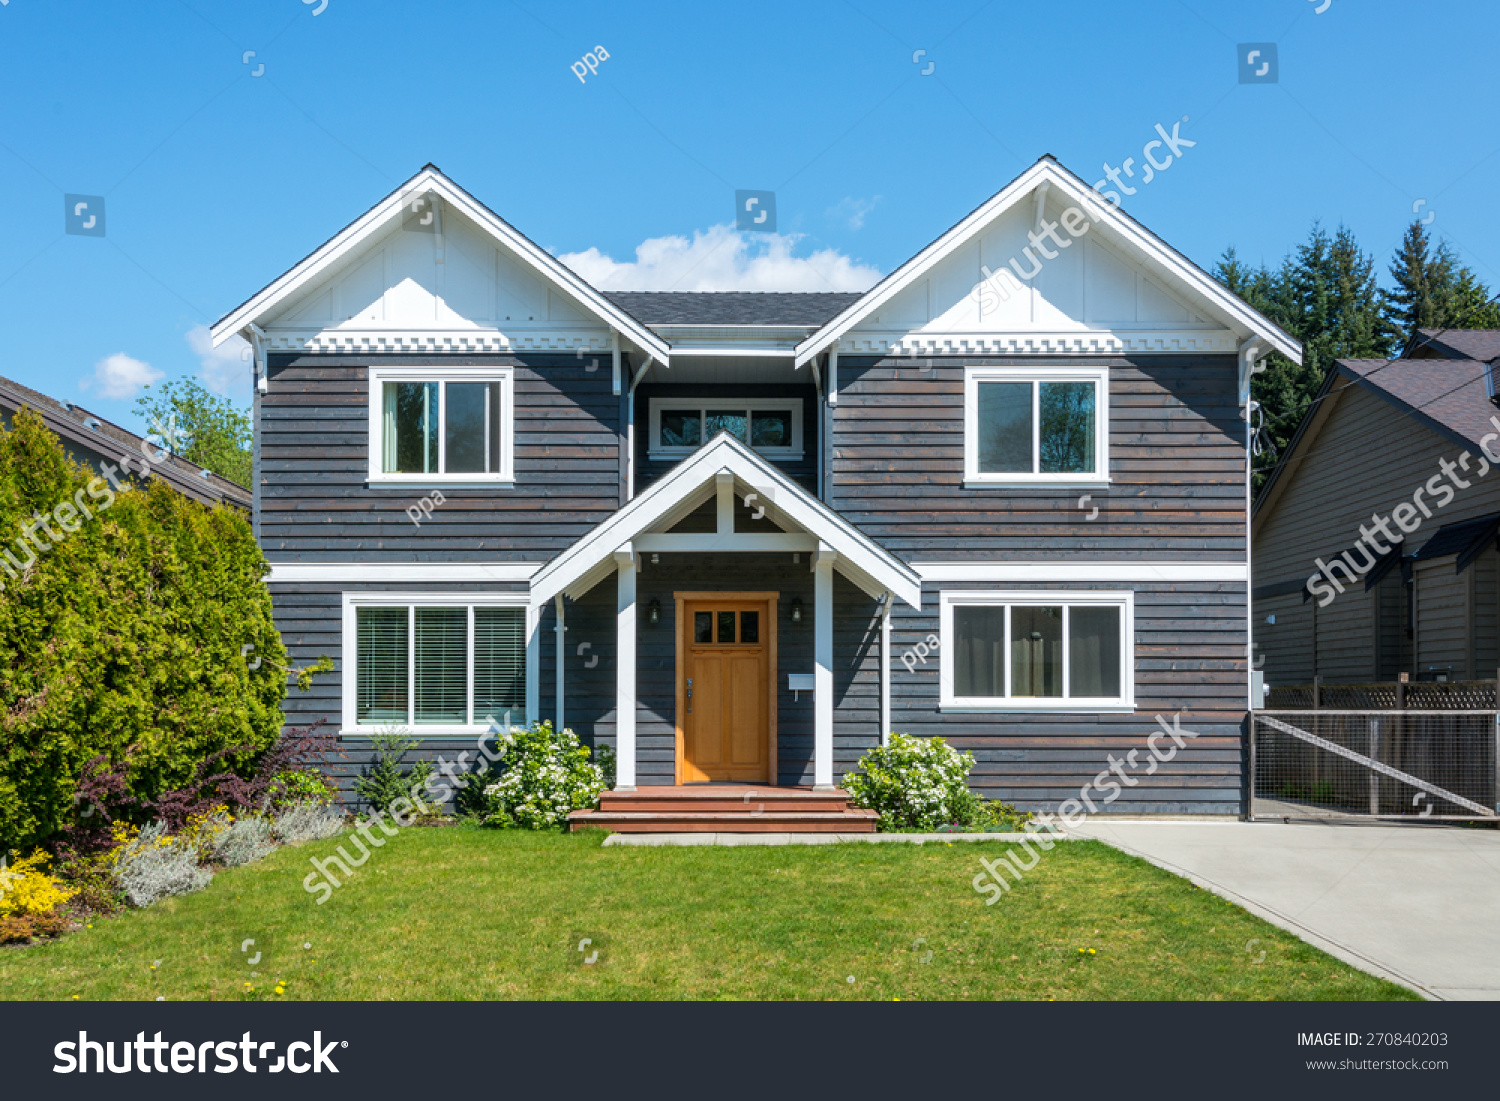 luxury house with beautiful landscaping on a sunny day home exterior - Luxury House Exterior